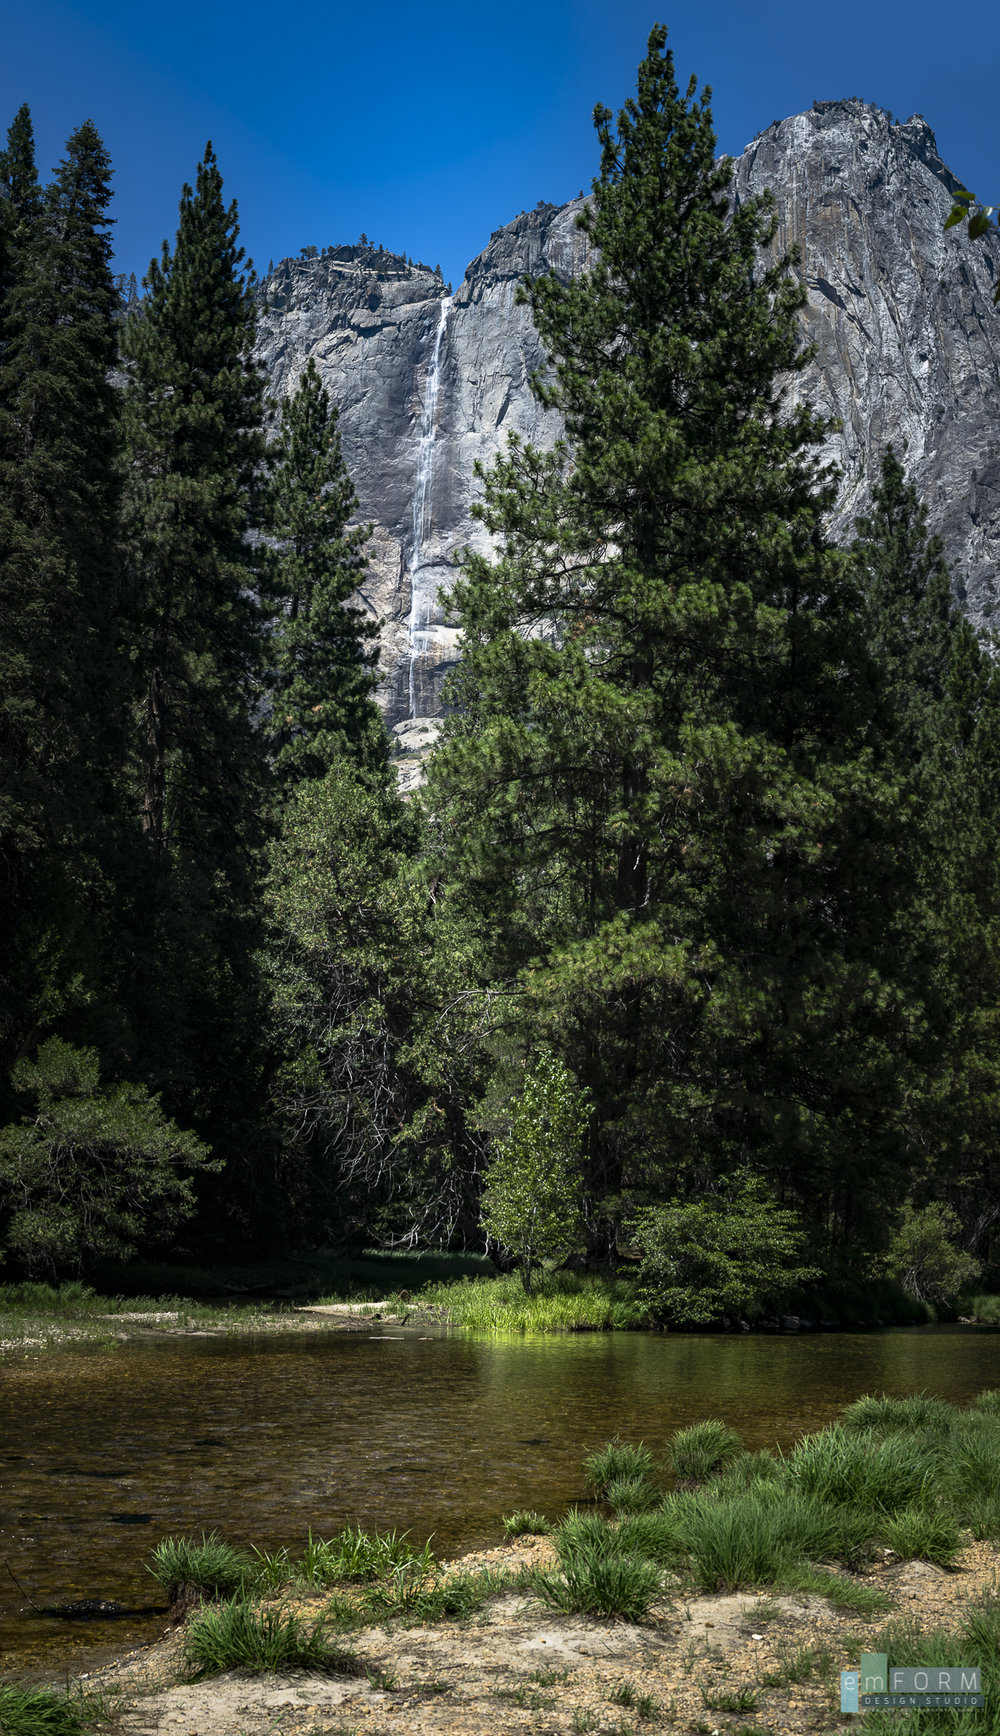 Yosemite Falls above the Merced River in Yosemite Valley, during a particularly hot day. We spent most of the day sitting in the river to keep cool while absorbing the magnificent views. Four shot vertical pano - 50mm - F9 - 1/320sec - ISO100